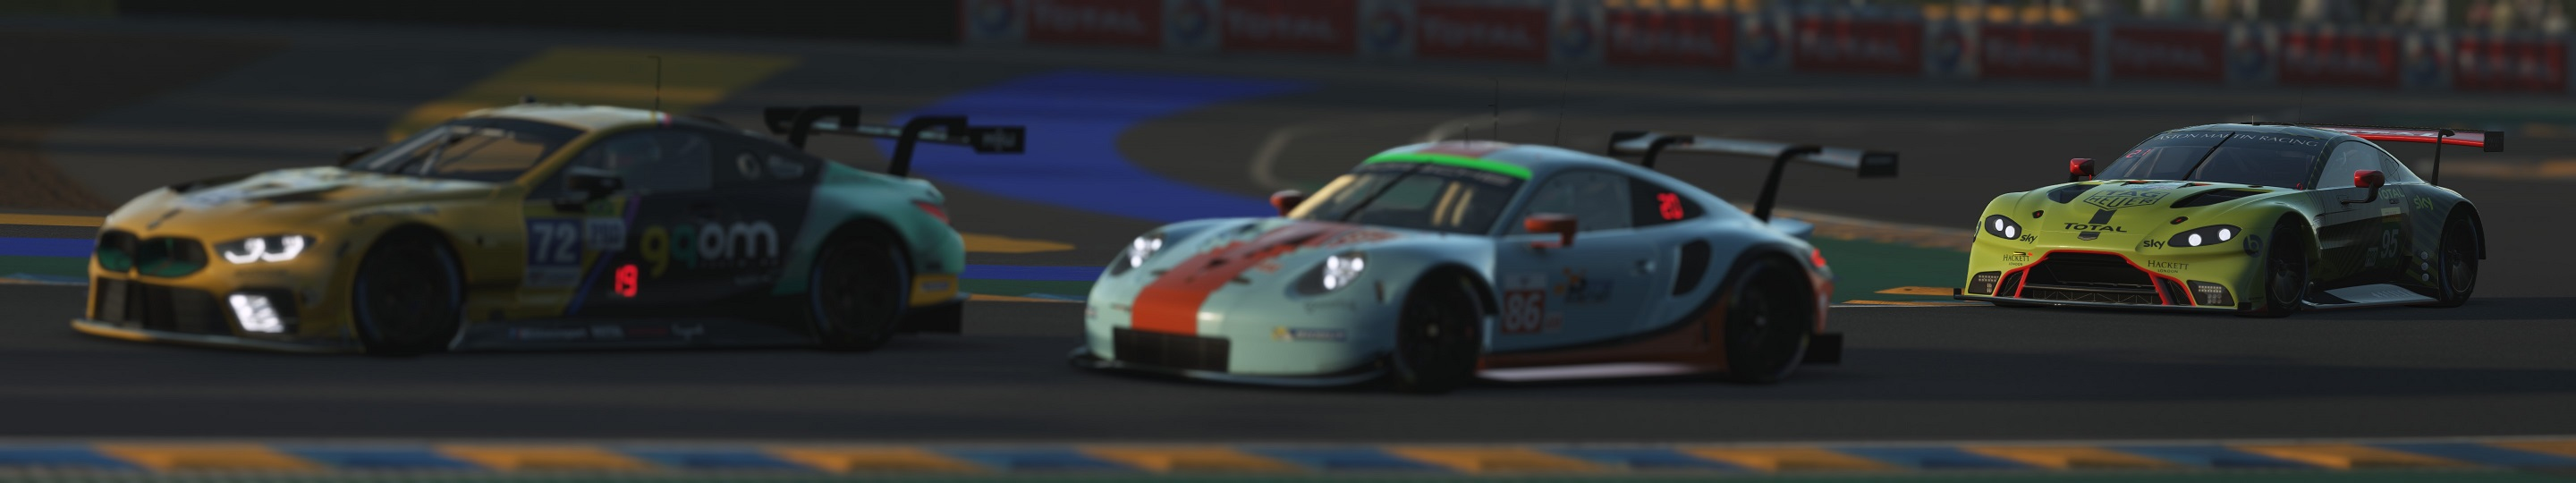 6 ASTON GTE at S397 LeMANS copy.jpg